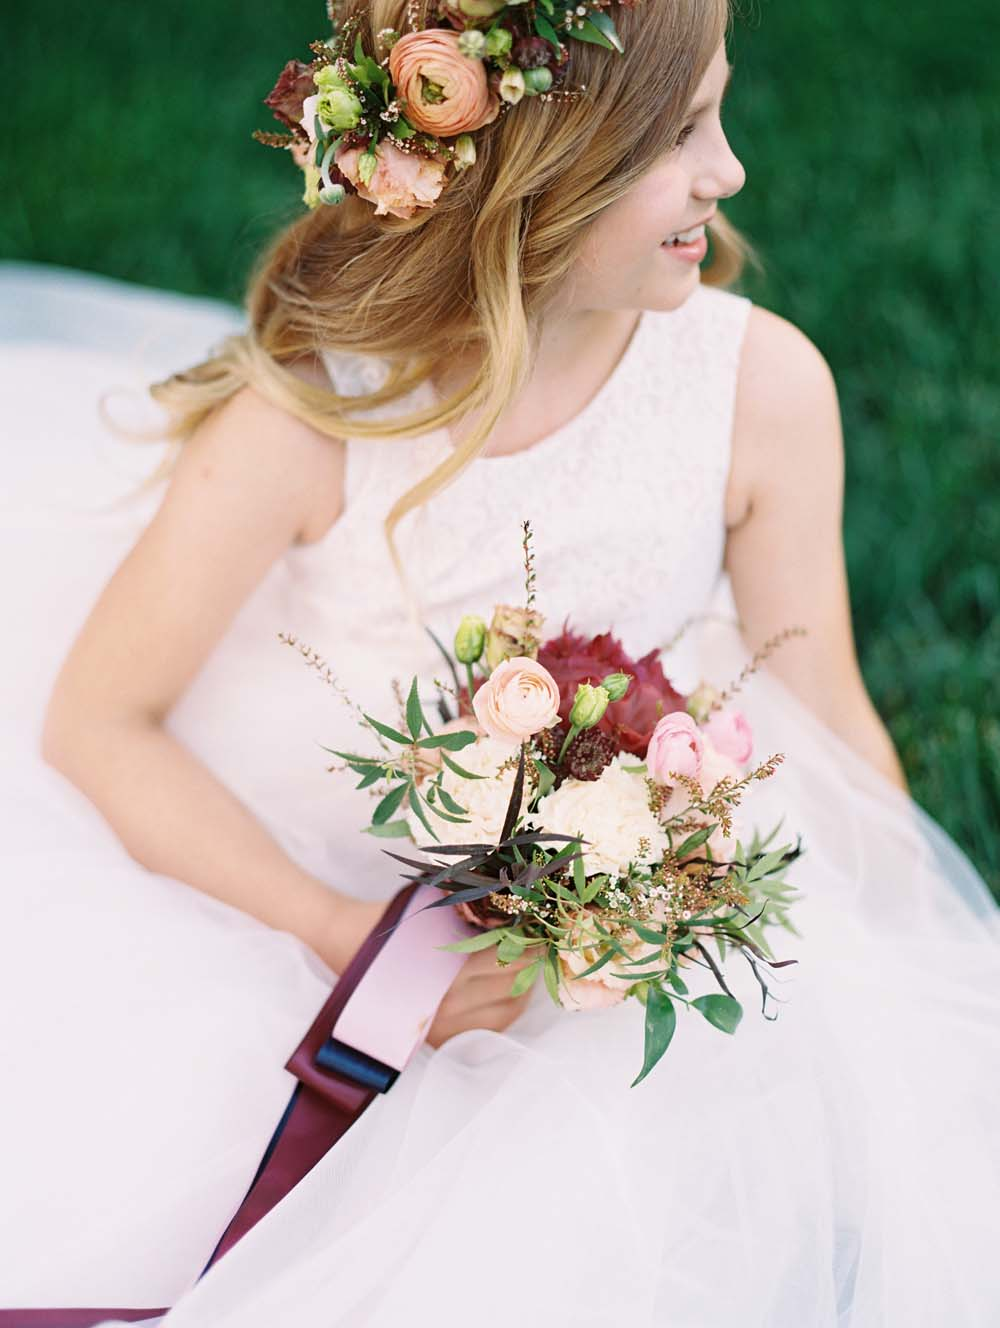 A Quirky Non-Traditional Wedding in Kitchener, Ontario - Flower girl